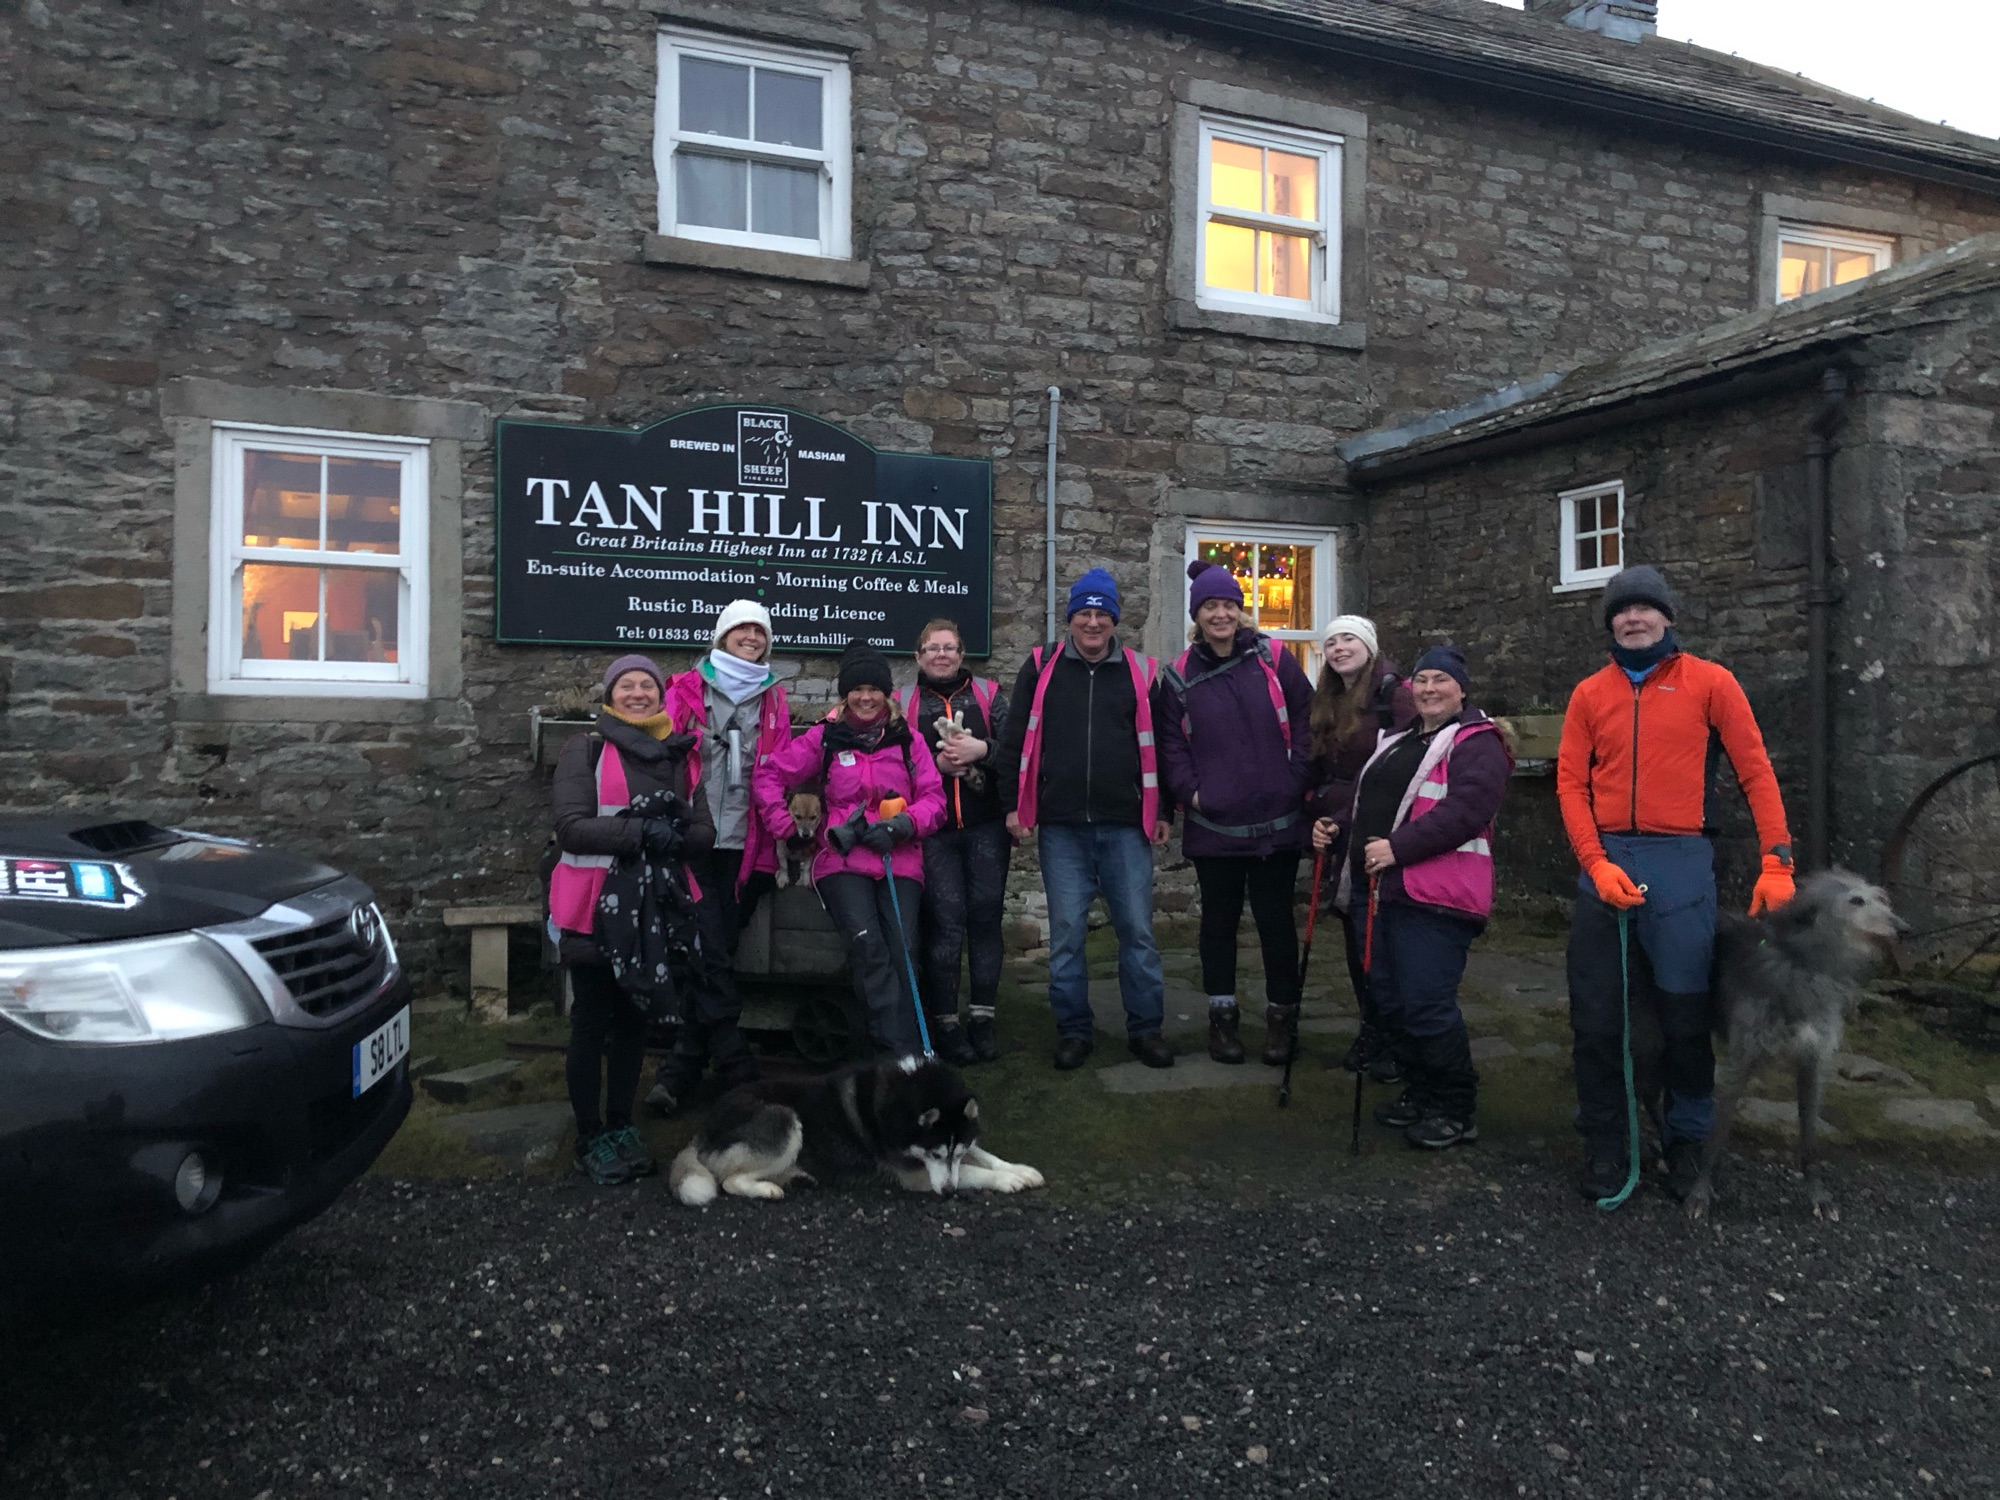 Relive 'Day 26 Reeth to Tan Hill 14 miles 6 5 hours walking